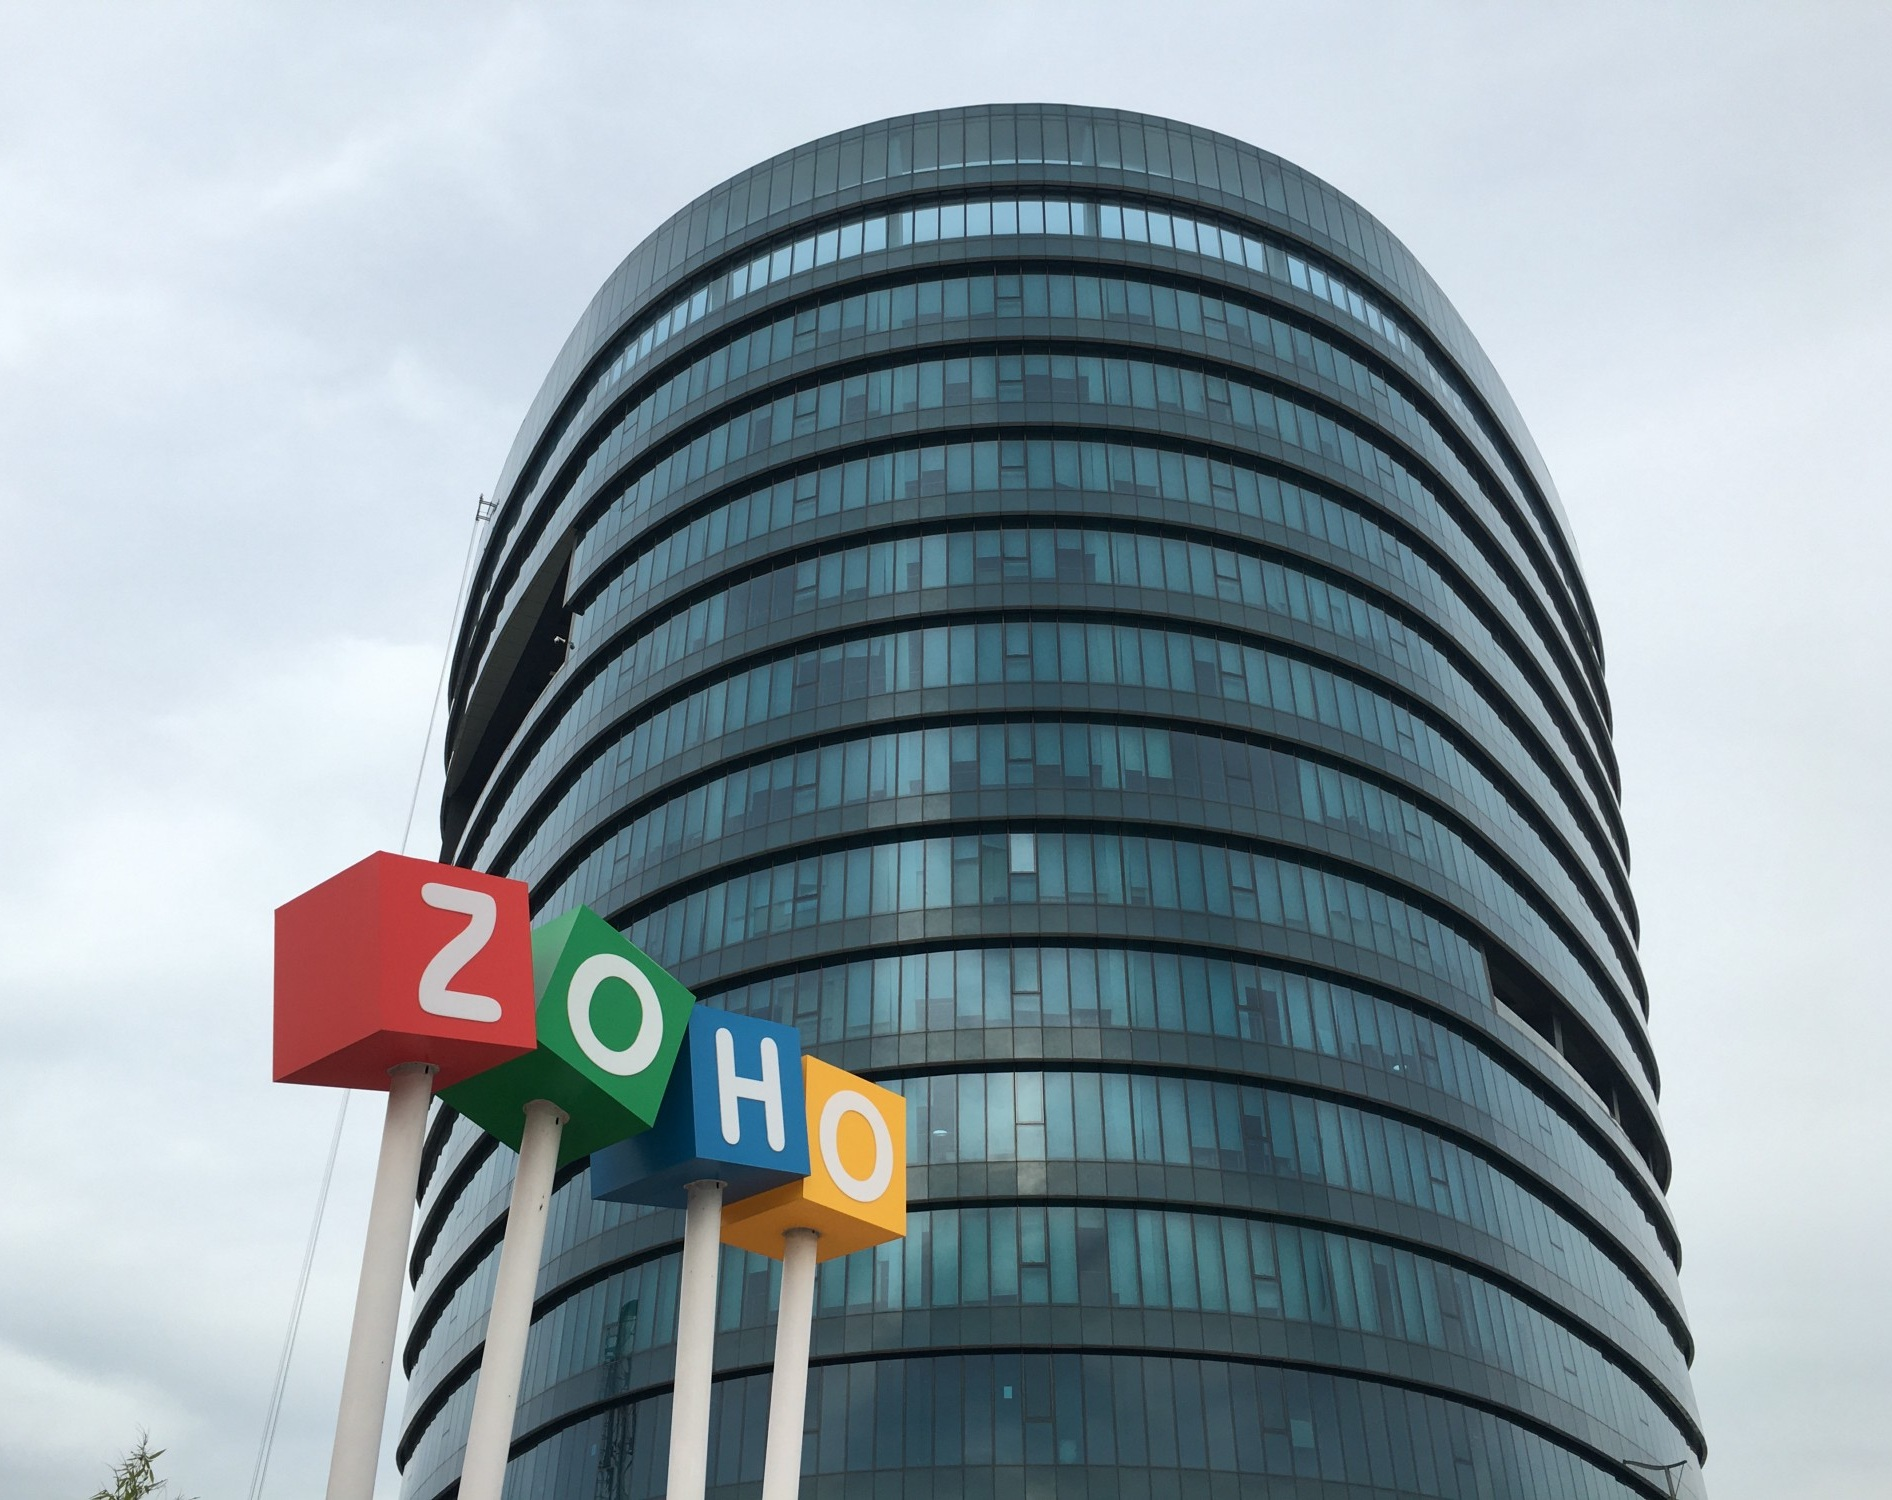 Zoho headquarters in Chennai, India (Samuel John)